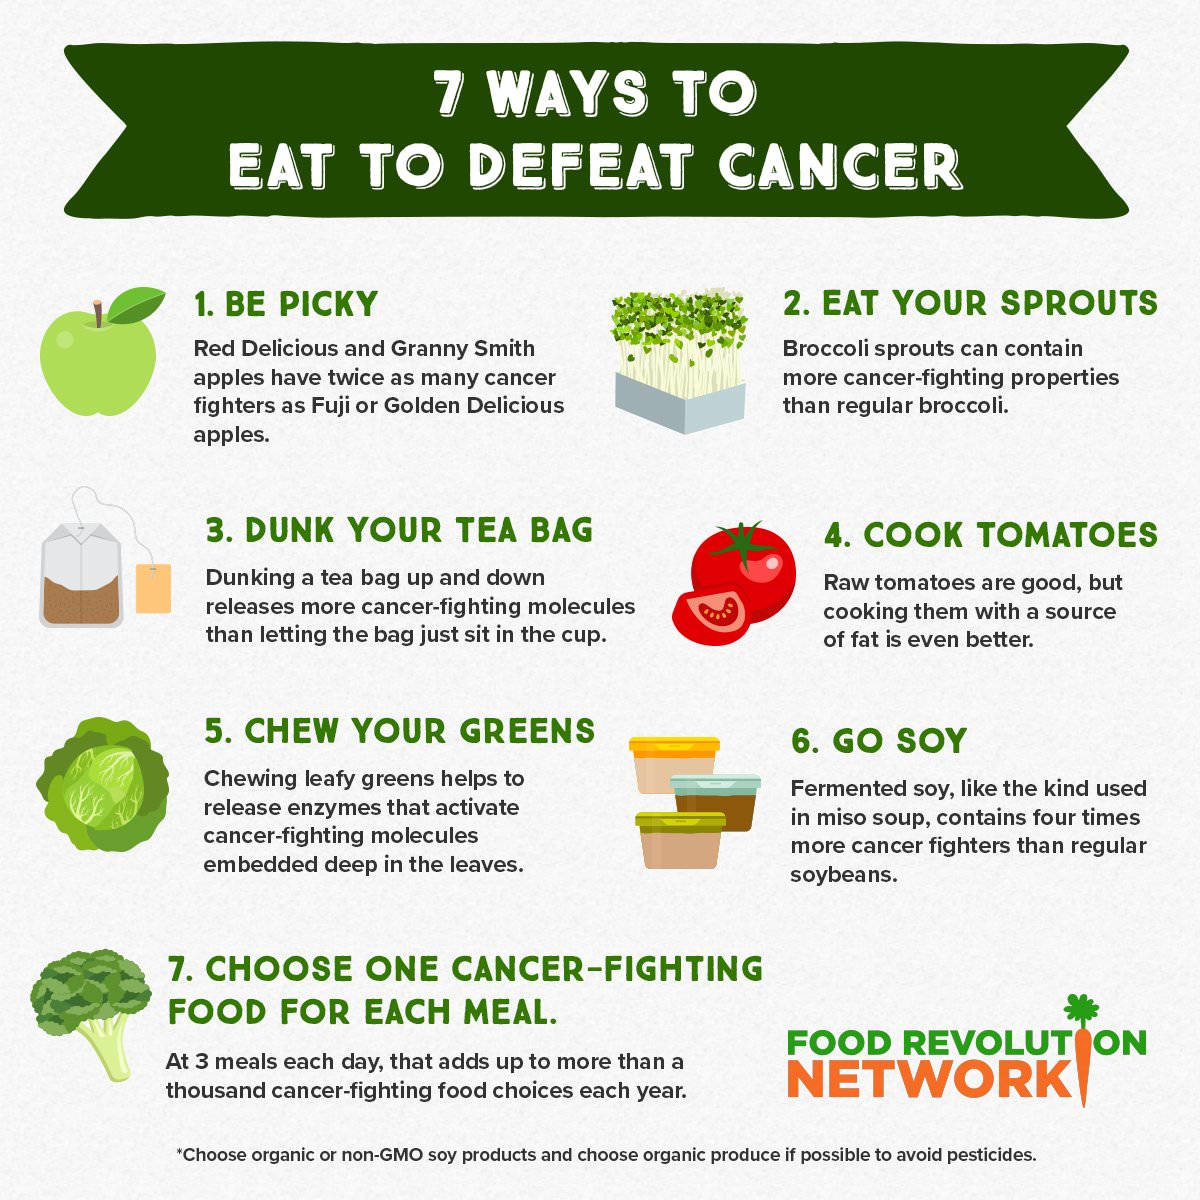 Eat to Defeat Cancer: 7 Steps for Fighting Cancer Every Day